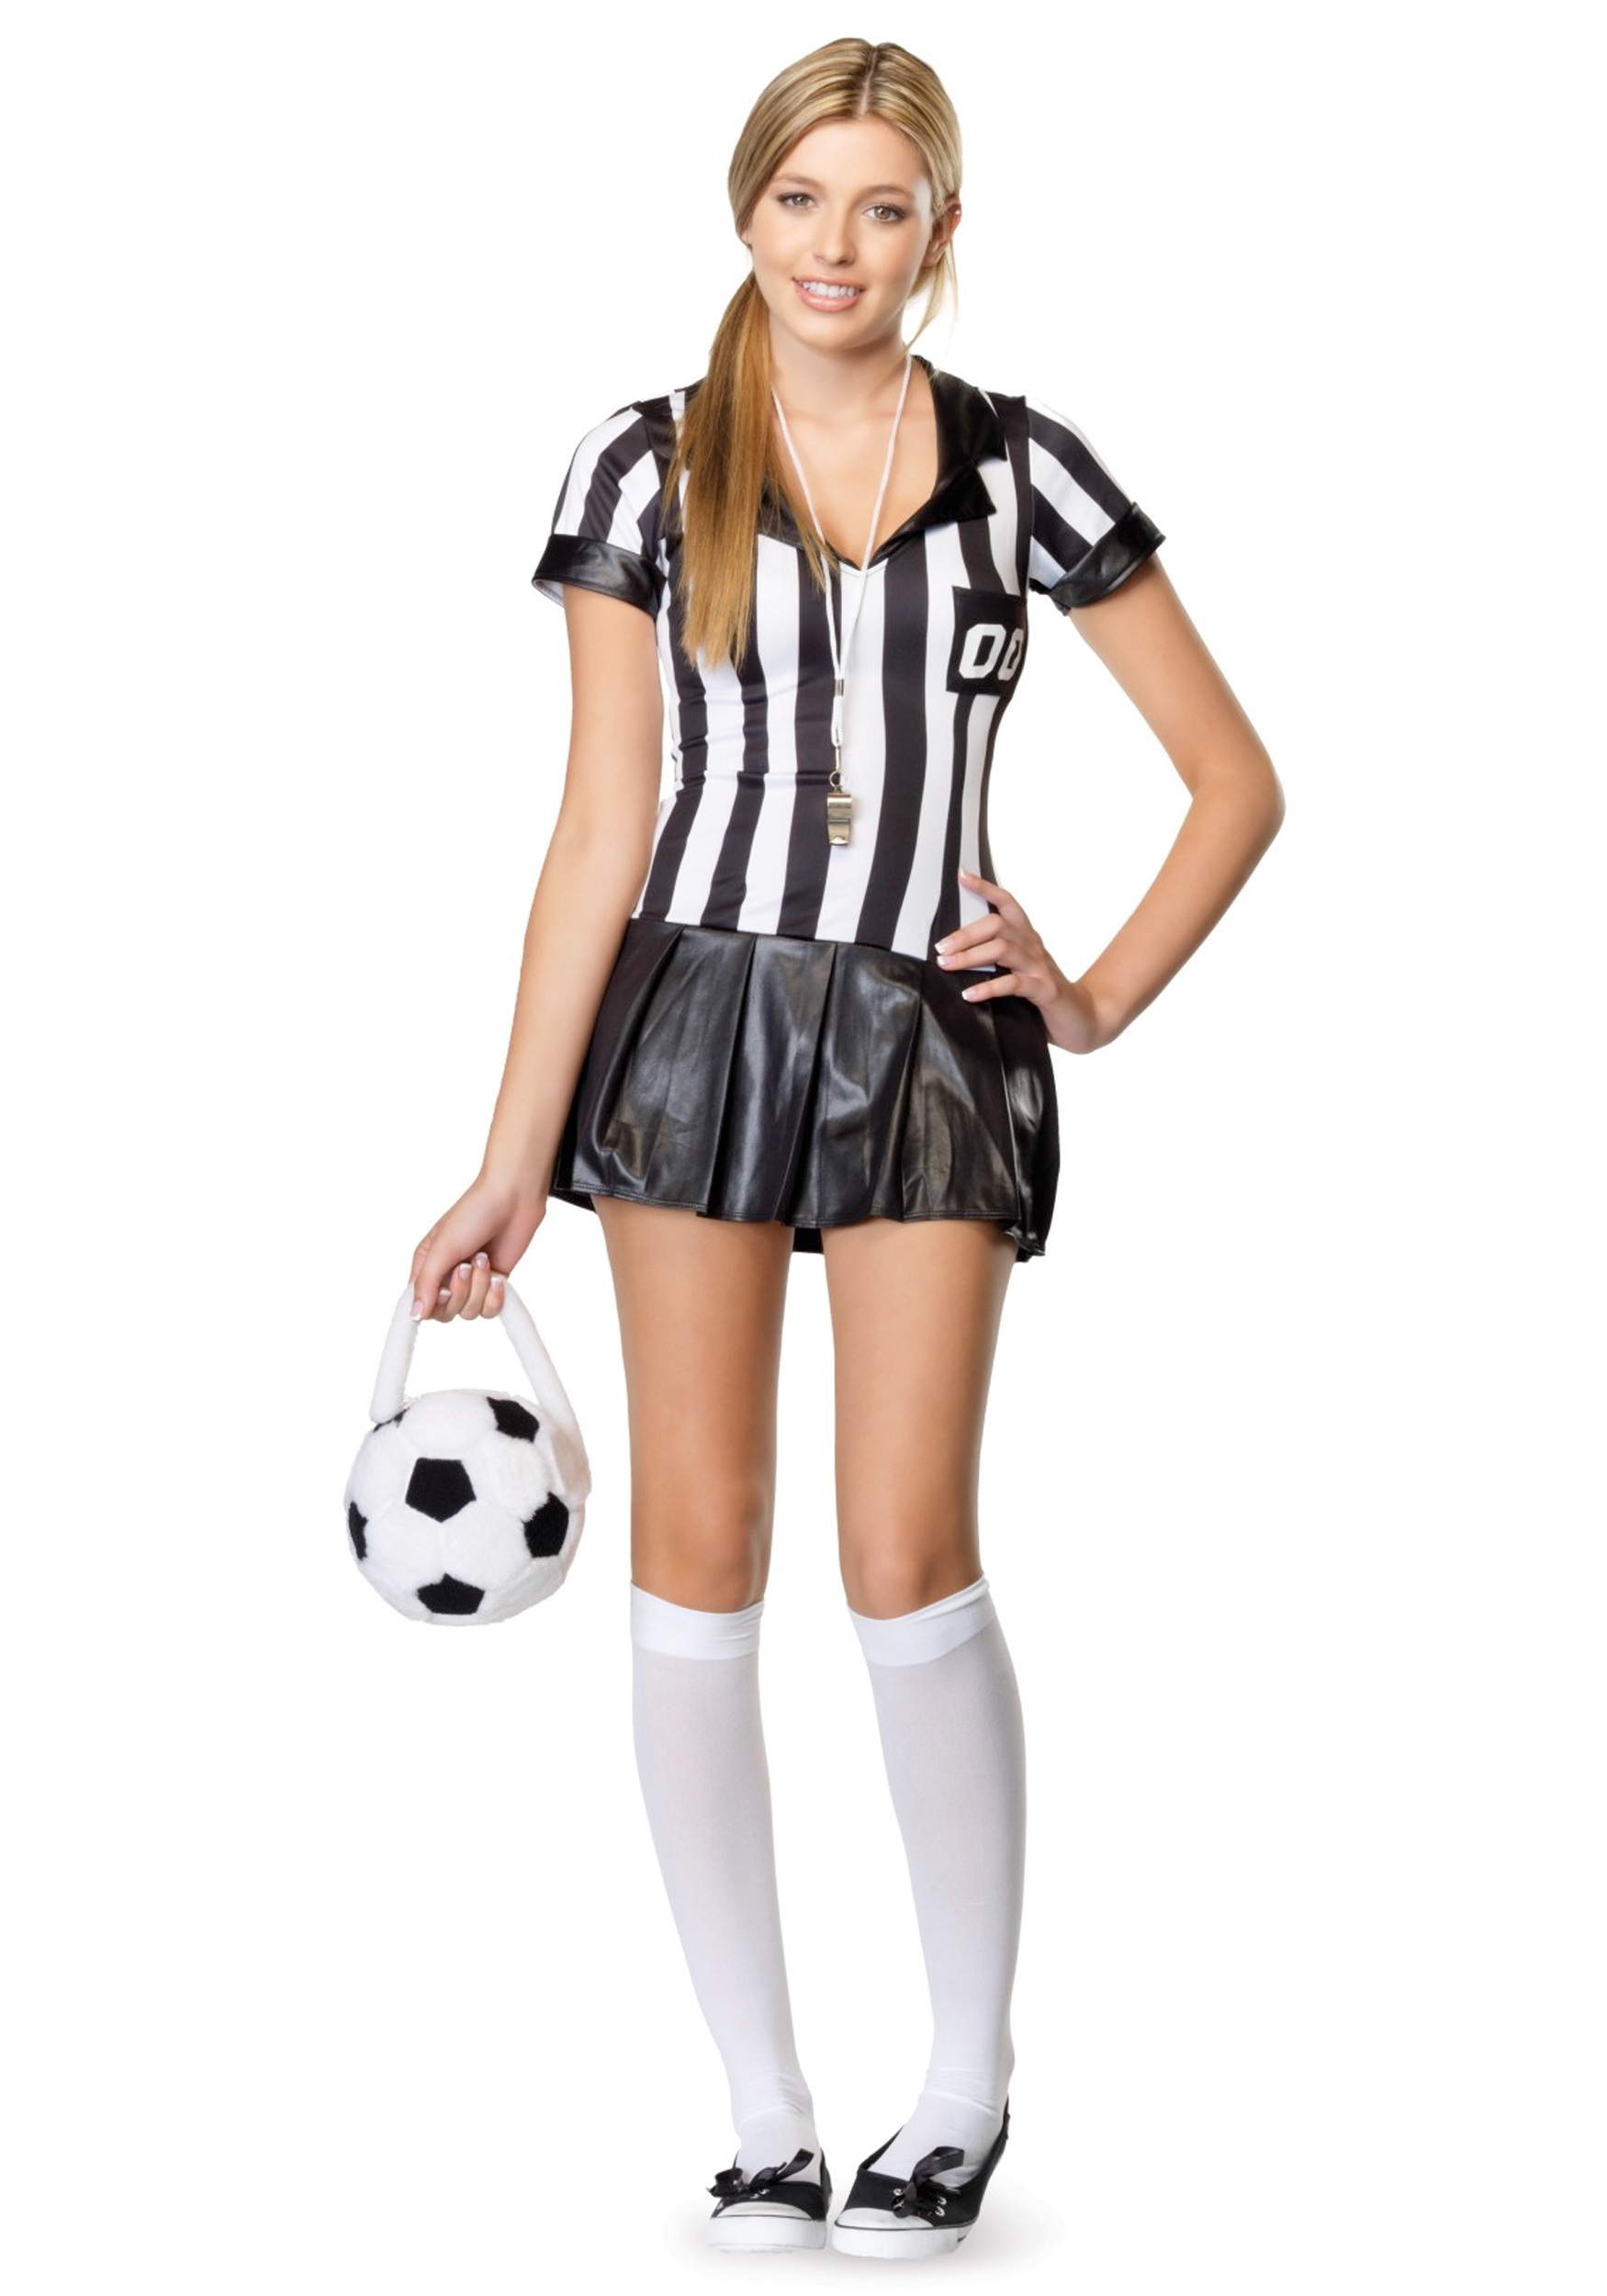 Teen Referee Costume  sc 1 st  Halloween Costumes & Teen Referee Costume - Halloween Costumes